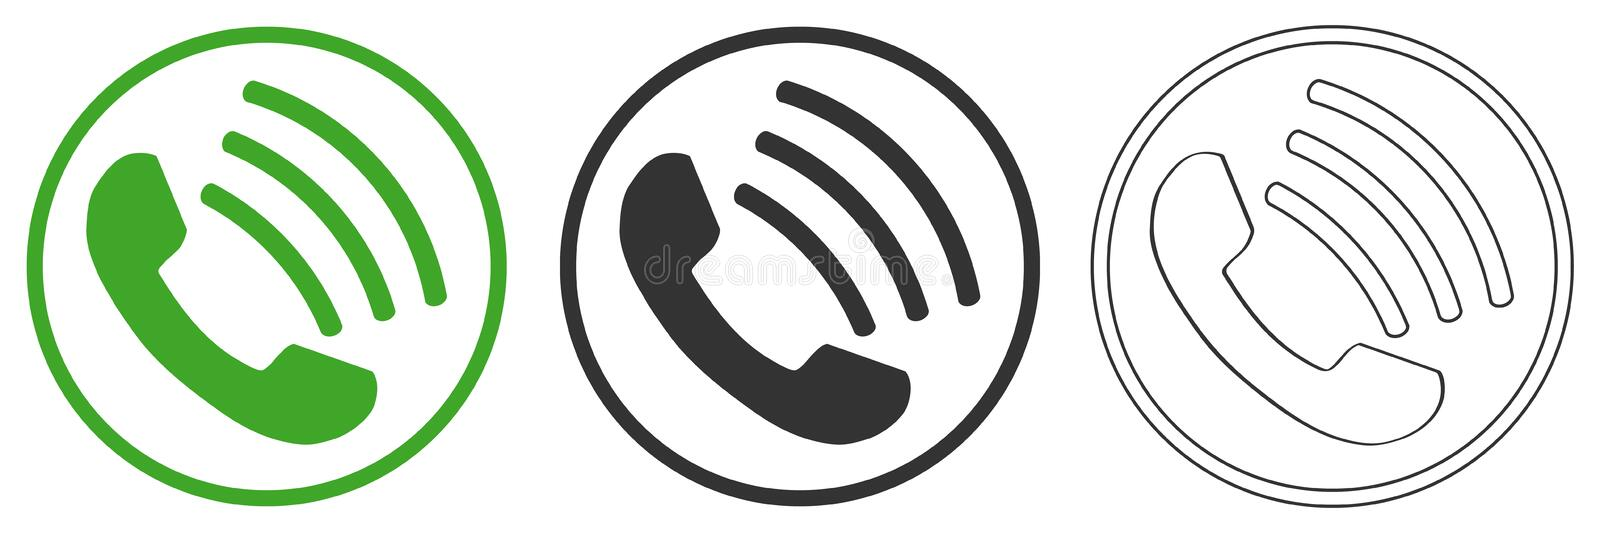 Call icon on the phone royalty free illustration